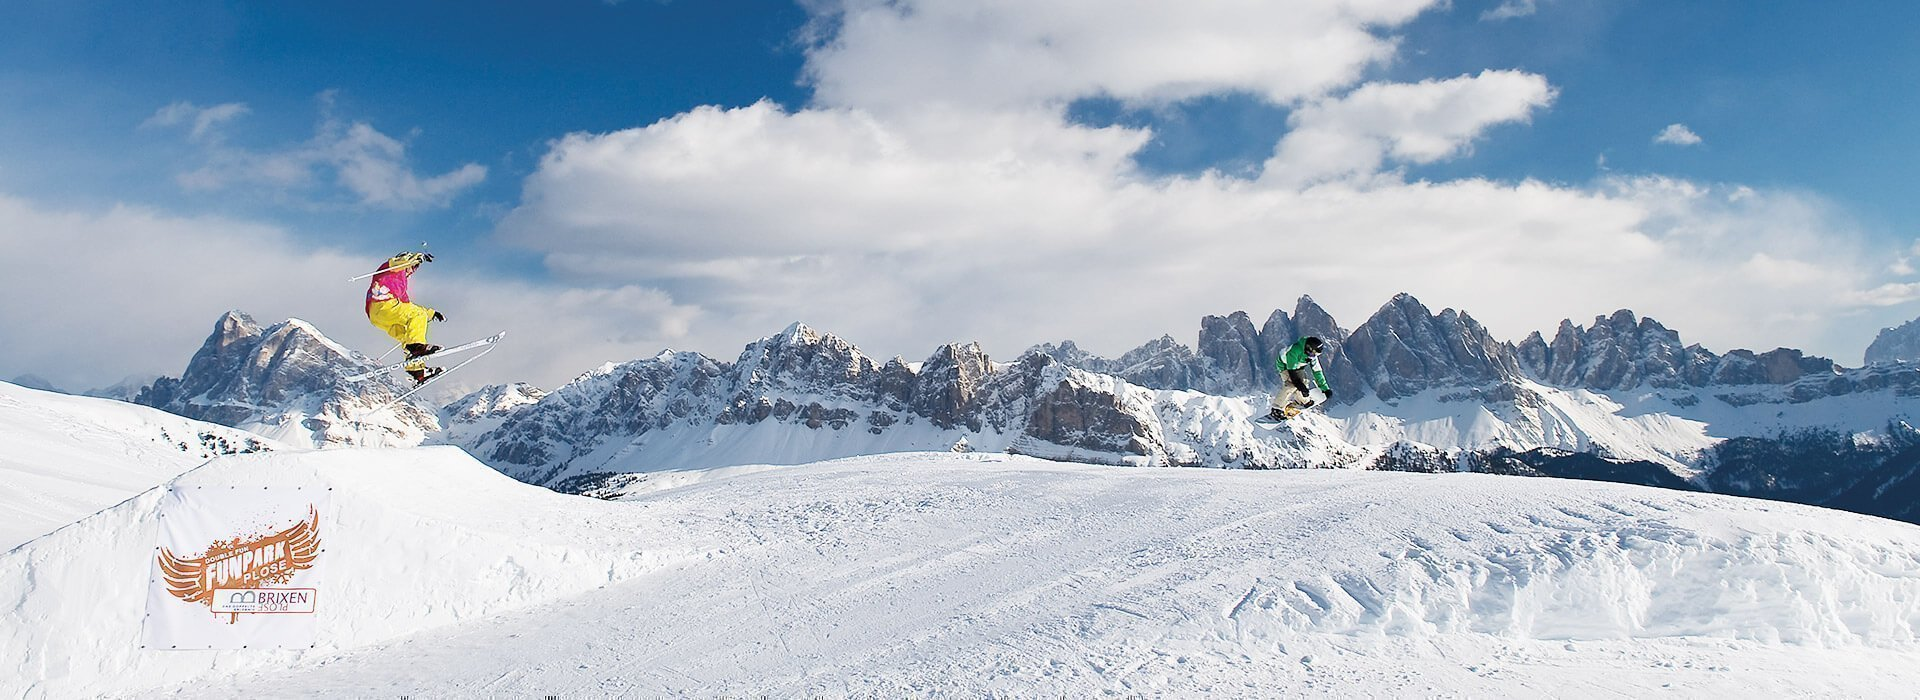 South Tyrol ski areas - Plose